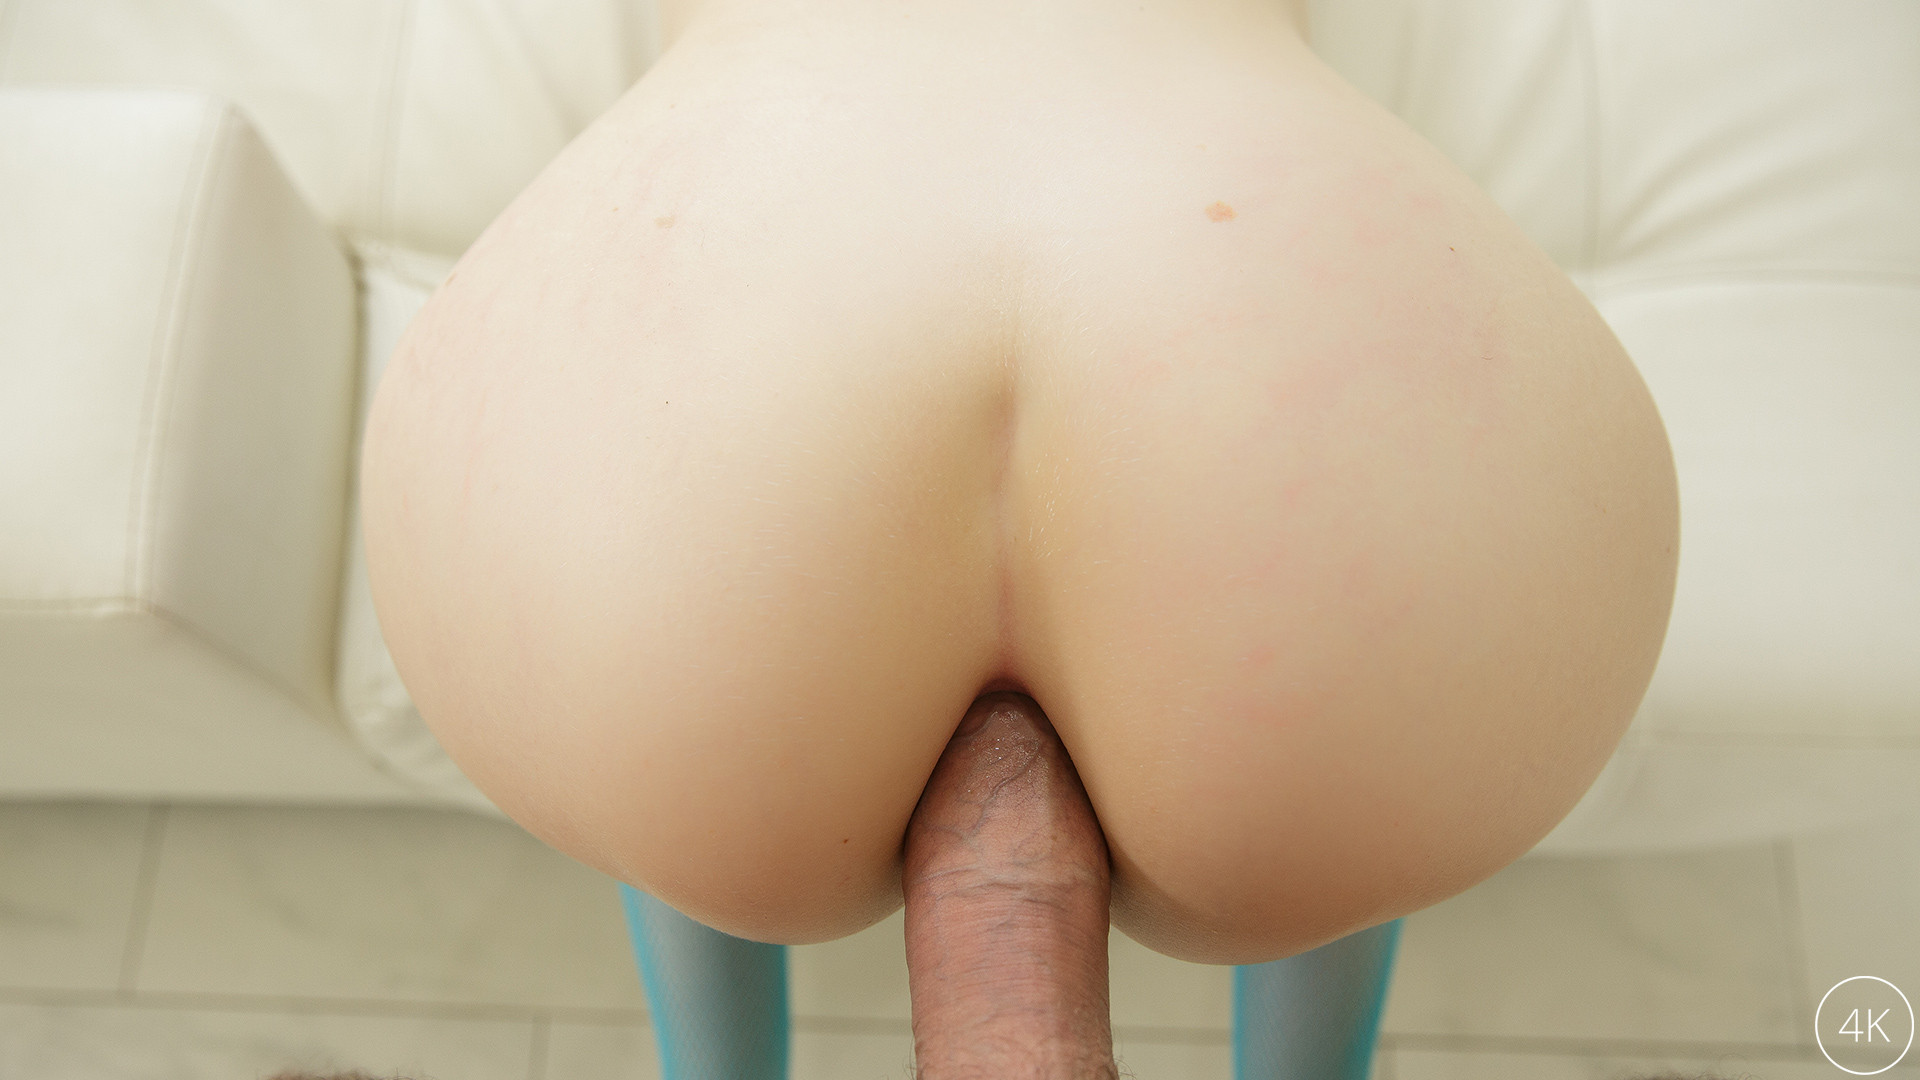 ManuelFerrara.com - Maya Kendrick Gapes Her Ass For You